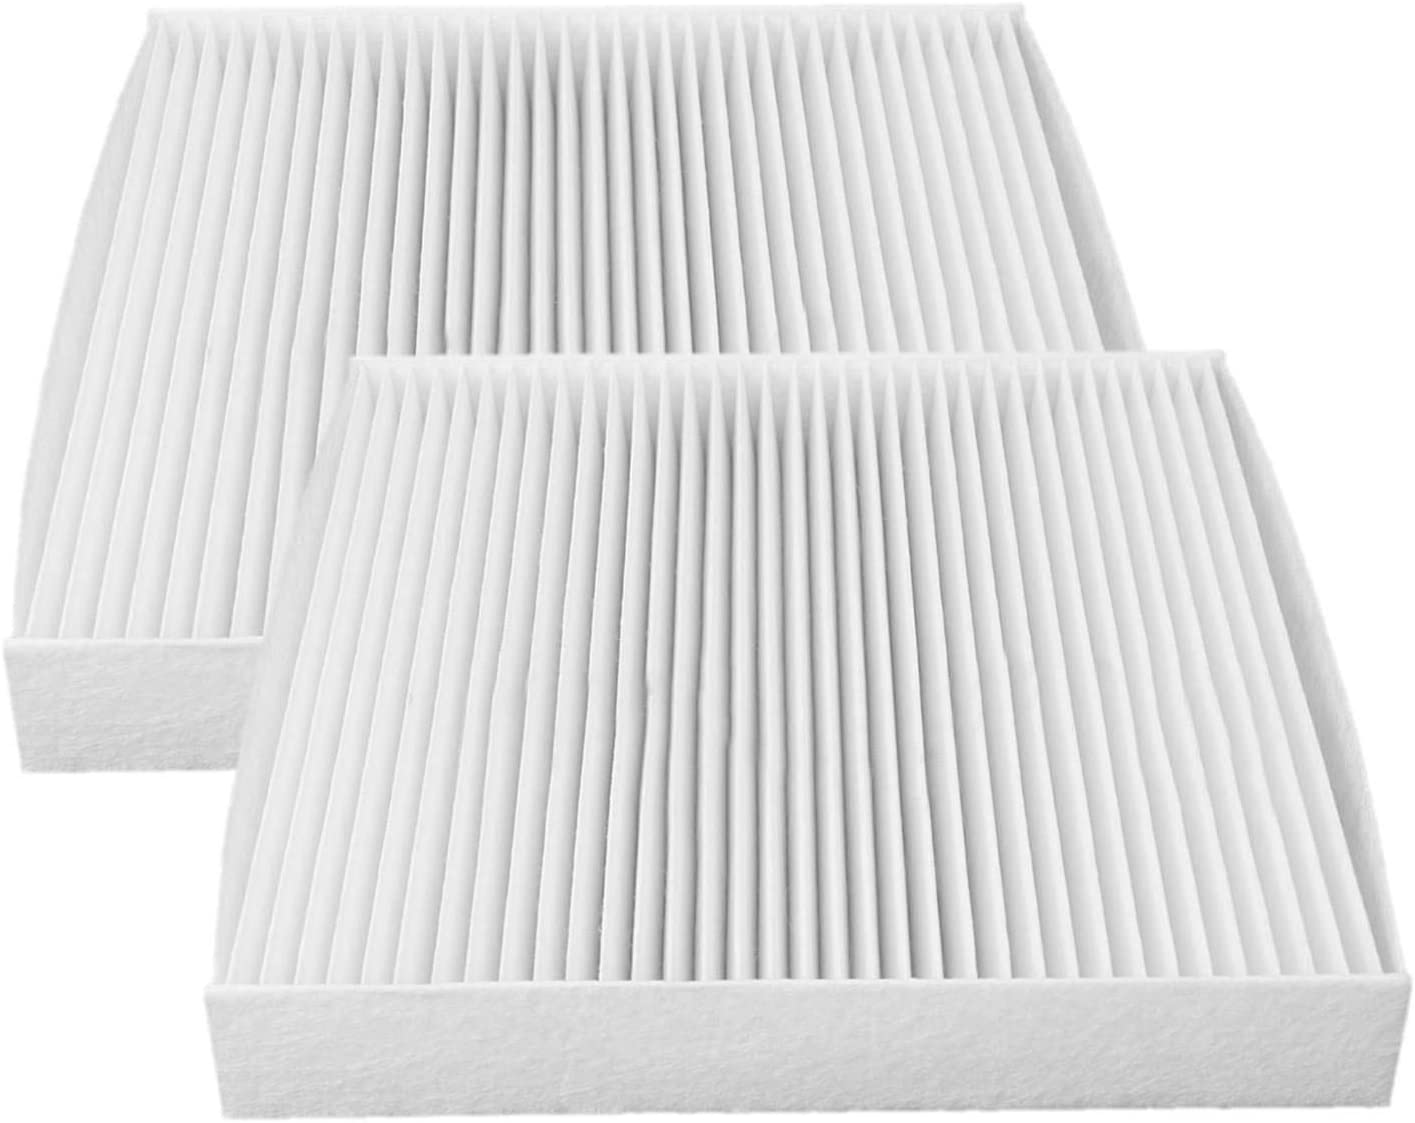 2 Pack White Cabin air filter for Toyota//Lexus//Land Rover//Pontiac,Replacement for CF10285,CP285